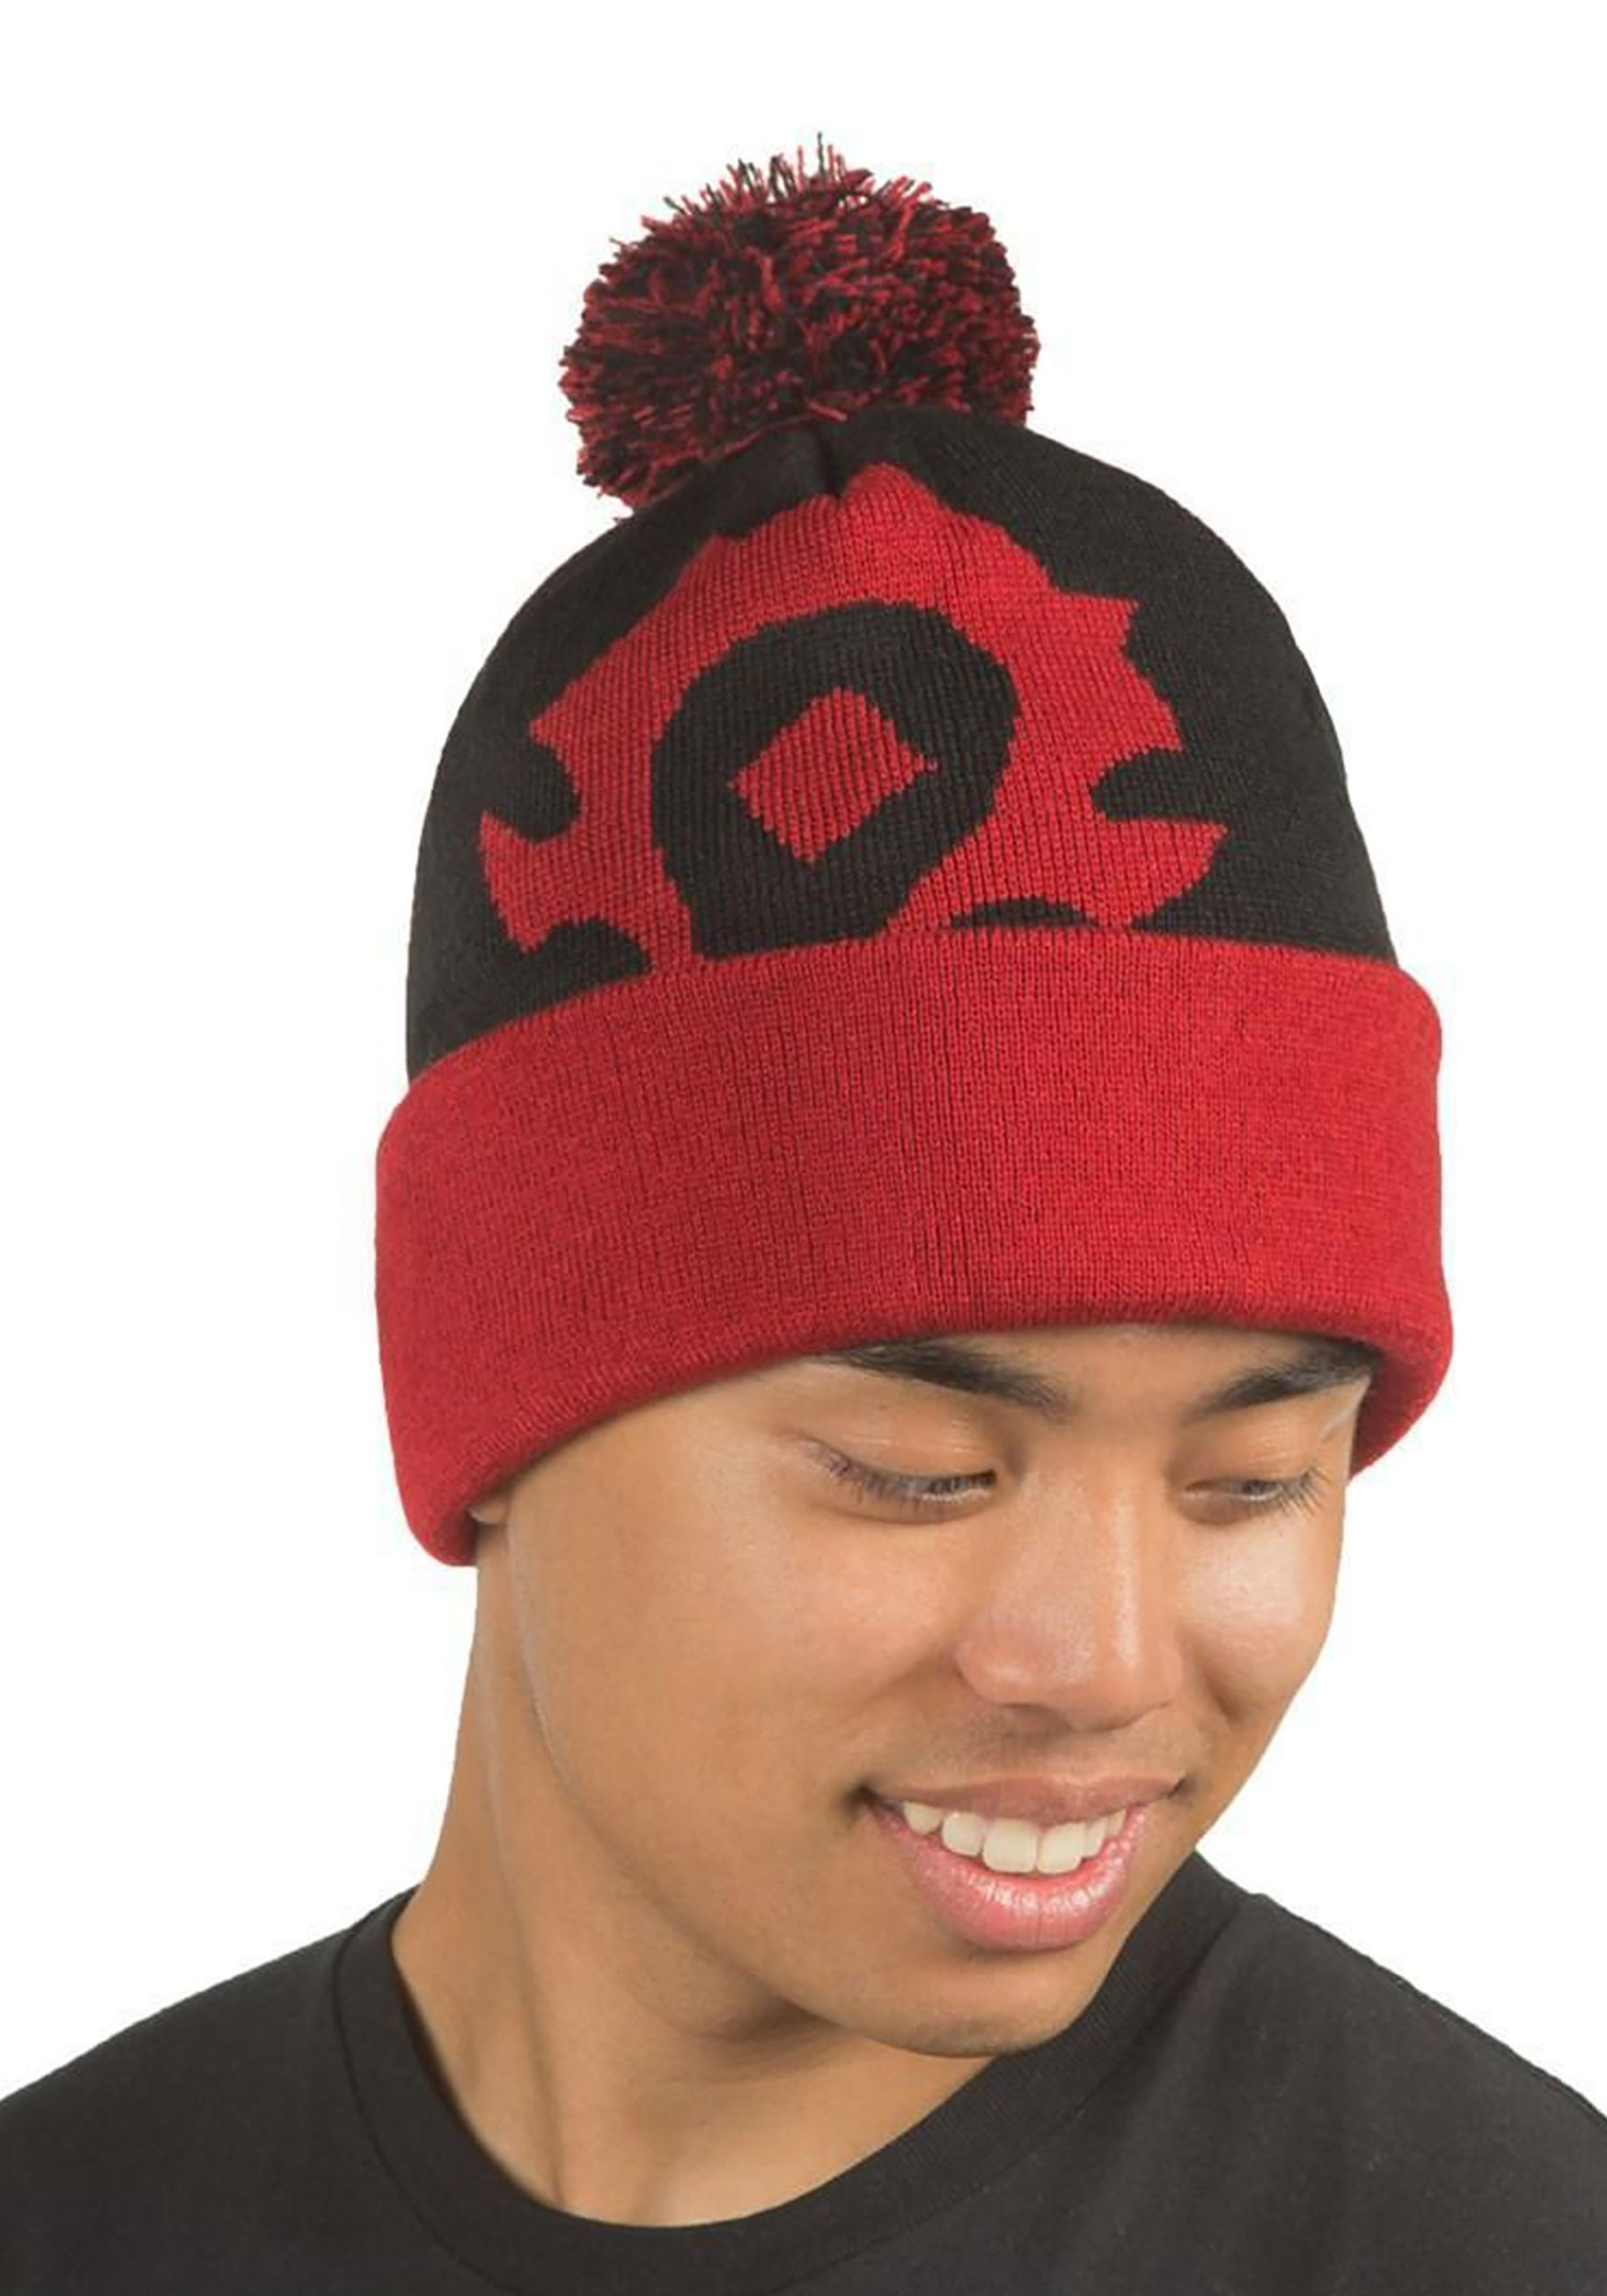 World of Warcraft Horde Pom Beanie for Adults 7eccc3ddb65